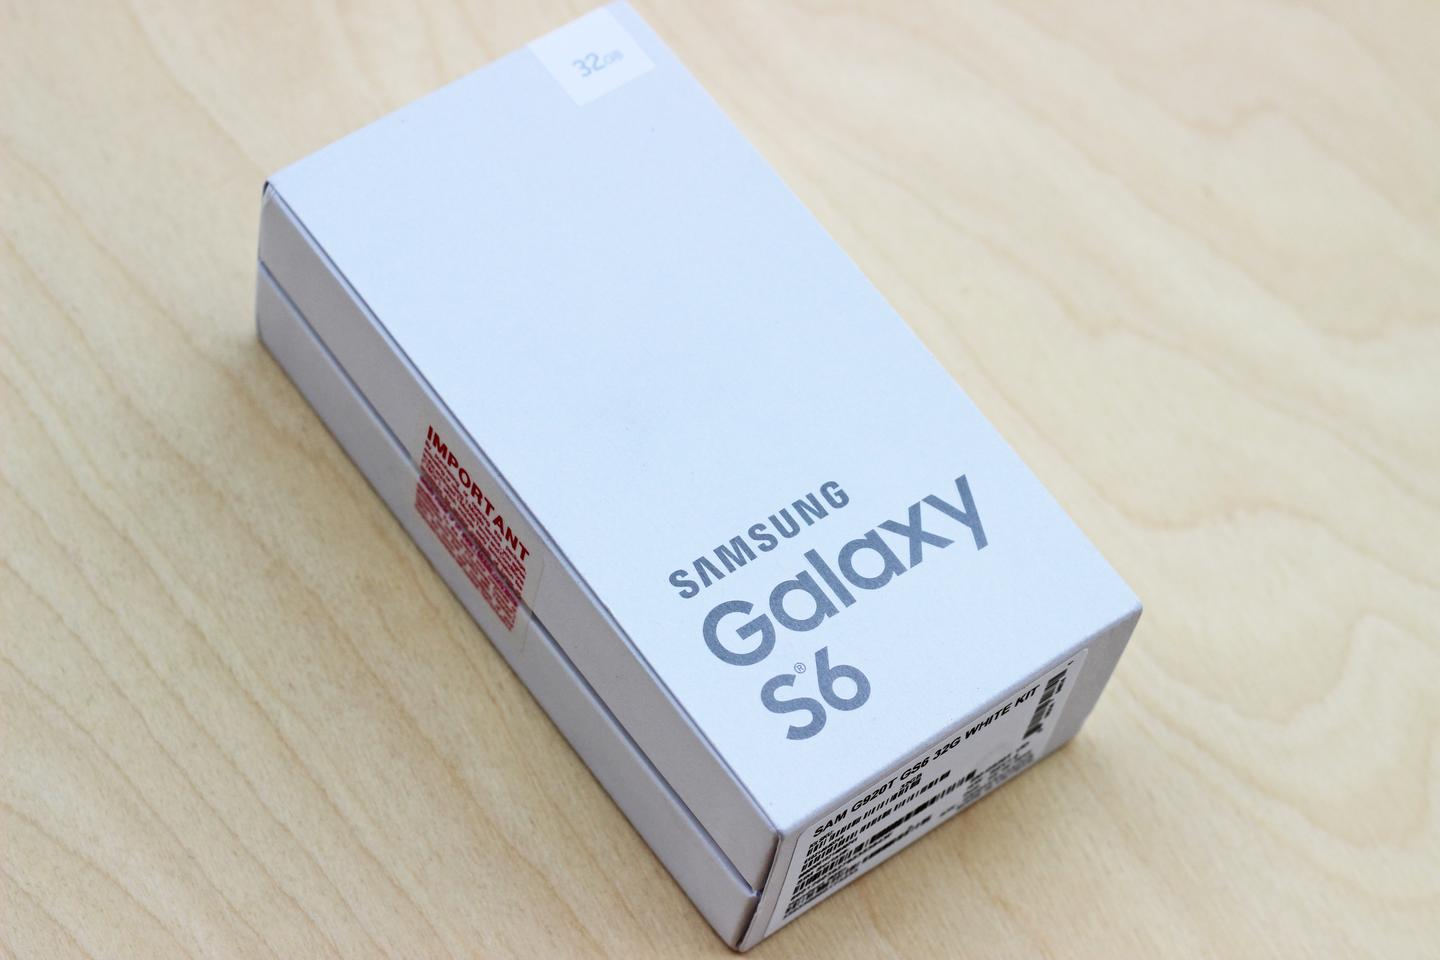 Retail packaging for the Samsung Galaxy S6 (Photo: Will Shanklin/Gizmag.com)